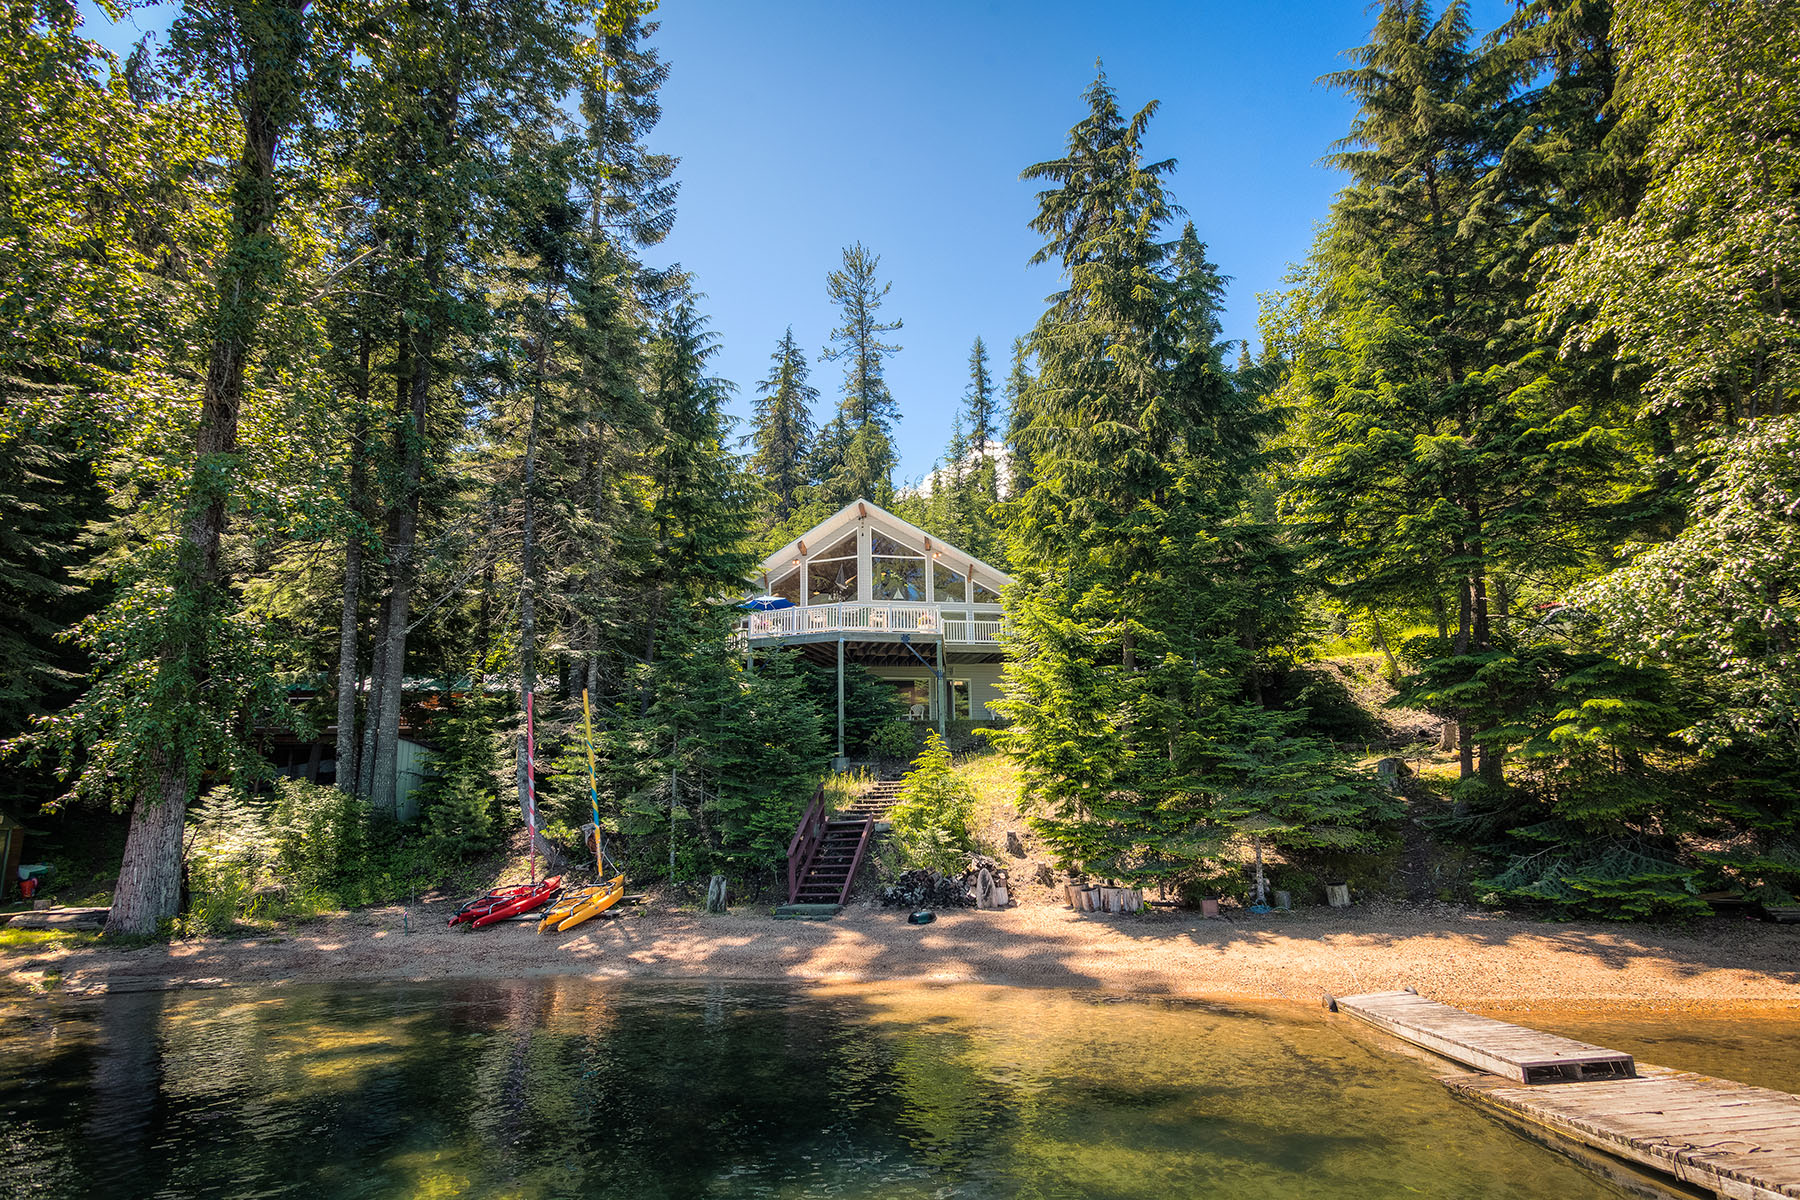 Single Family Home for Sale at Sunsets on the Beach Waterfront Home 10147 N Speakeasy Ln Hayden, Idaho, 83835 United States